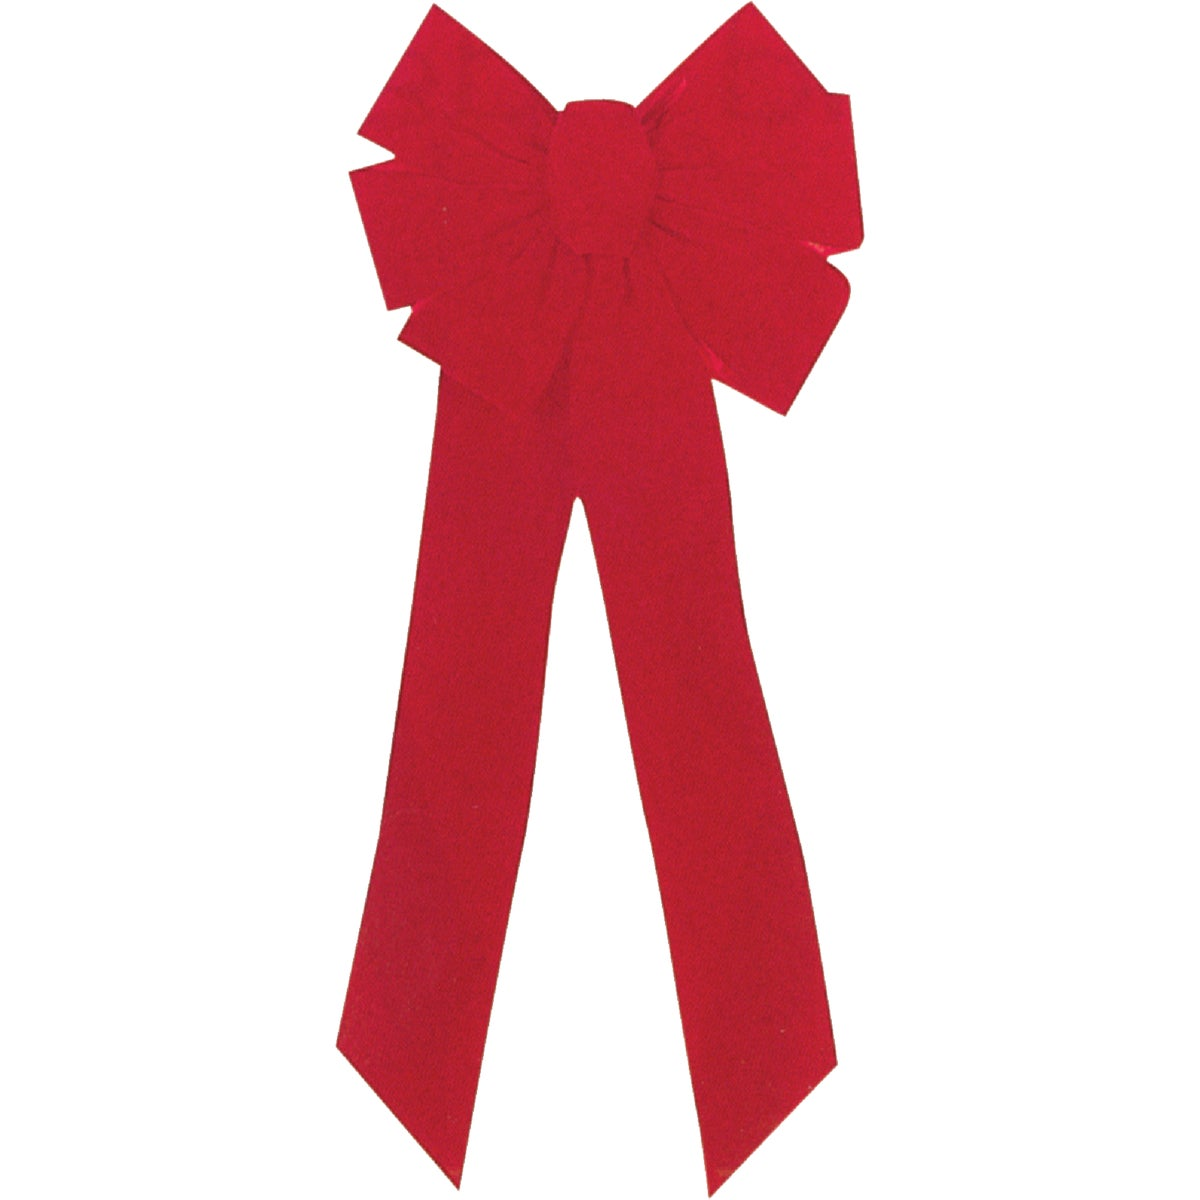 10X21 7-LOOP RED BOW - 4123P48-A607DB by Dyno Seasonal  Tx